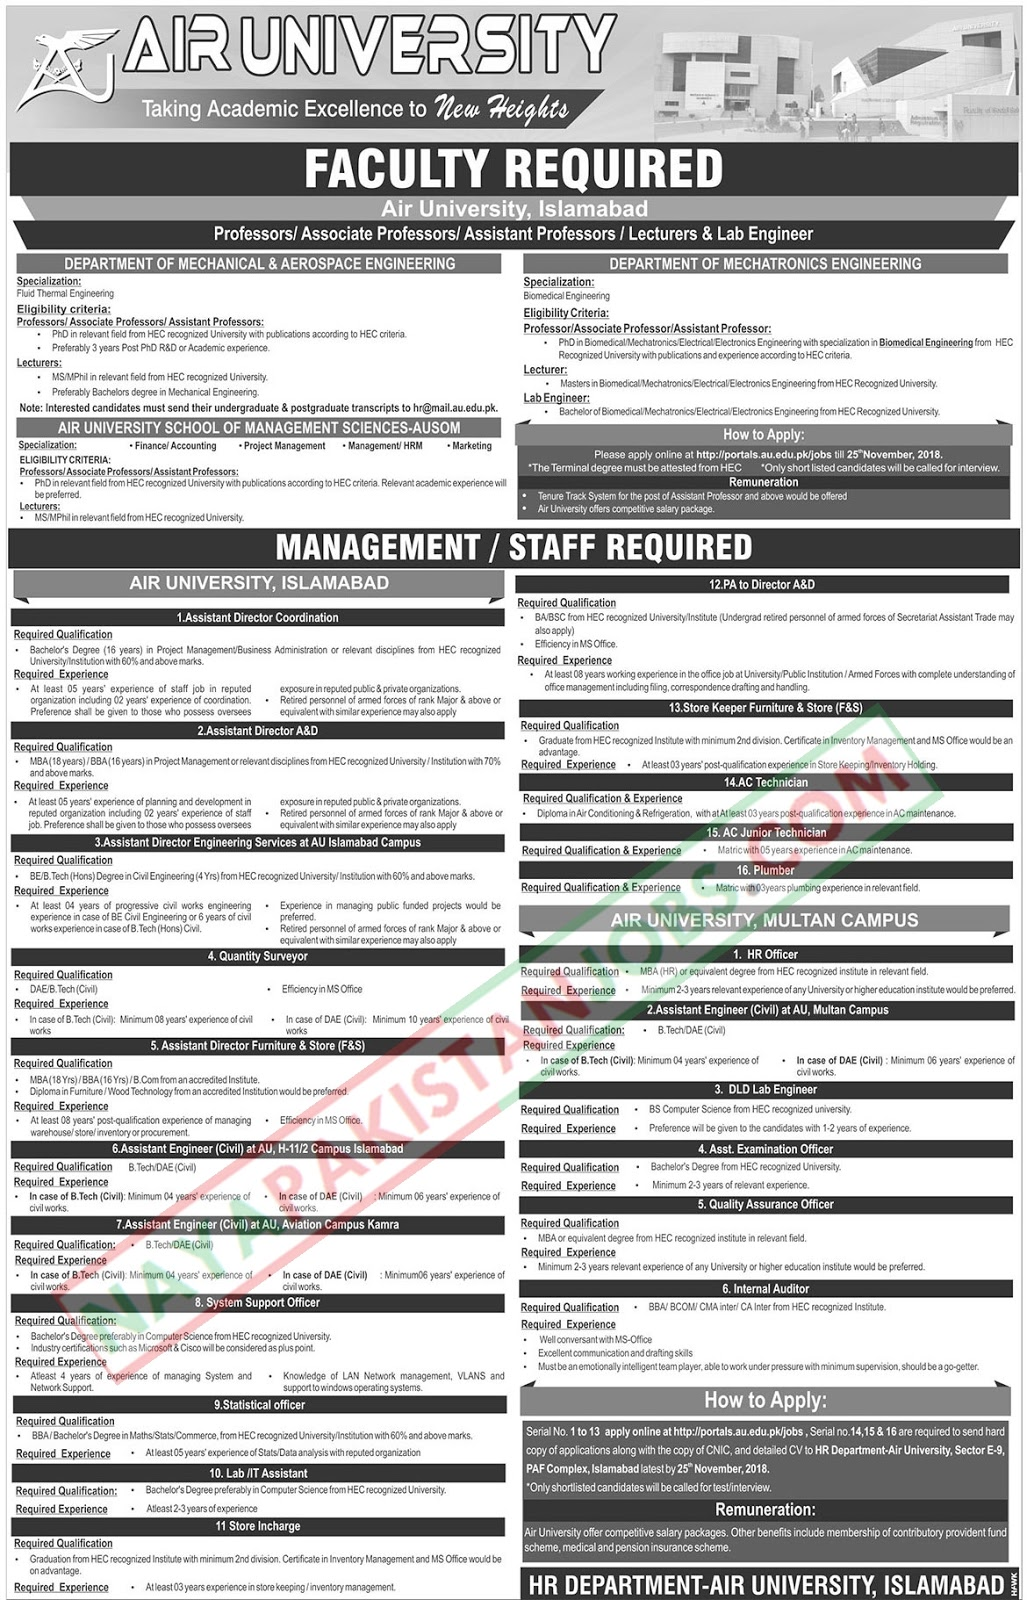 Latest Vacancies Announced in Air University Islamabad 12 November 2018 - Naya Pakistan